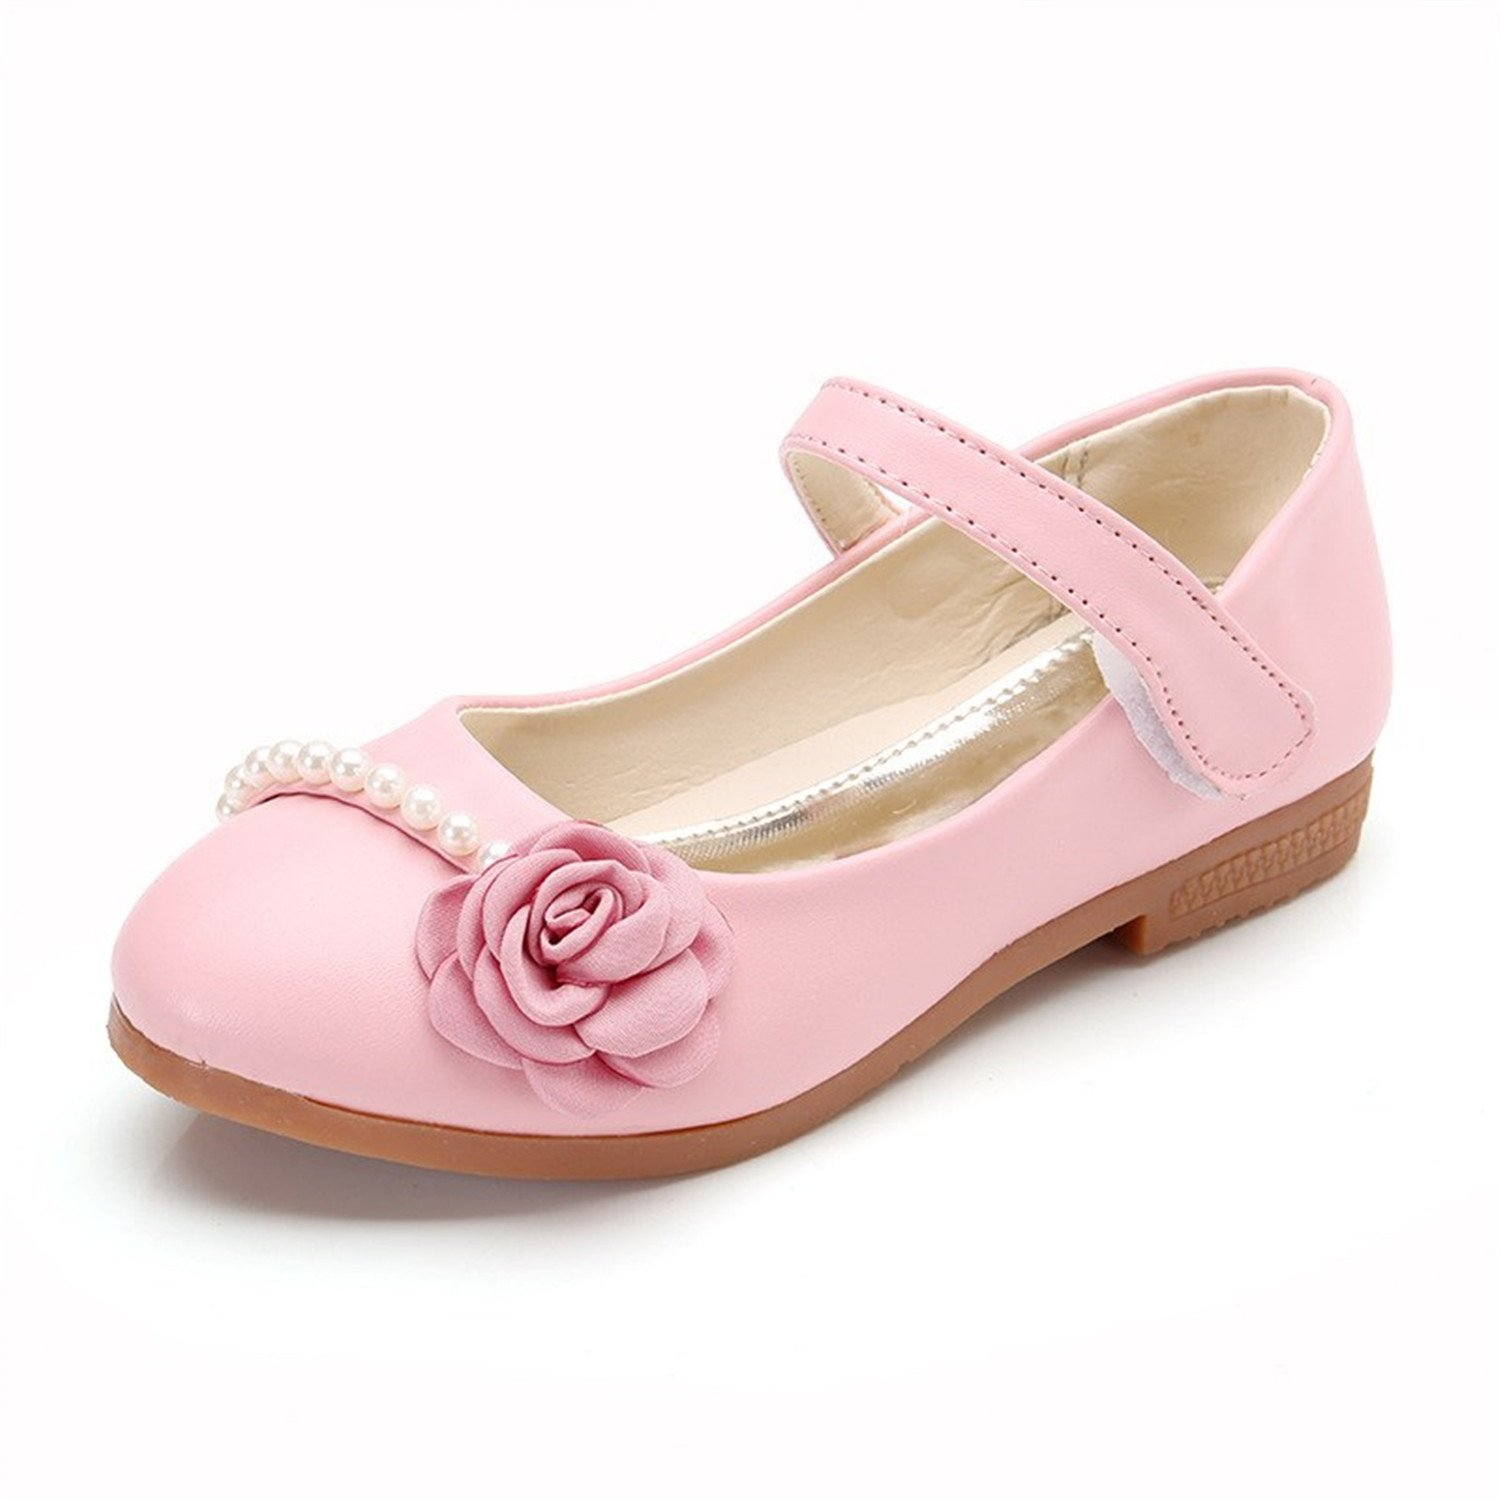 Perfues Girls Pu Leather Shoes Kids Spring Autumn Party Stage Fancy Dance Shoes Flower Flats Mocassins